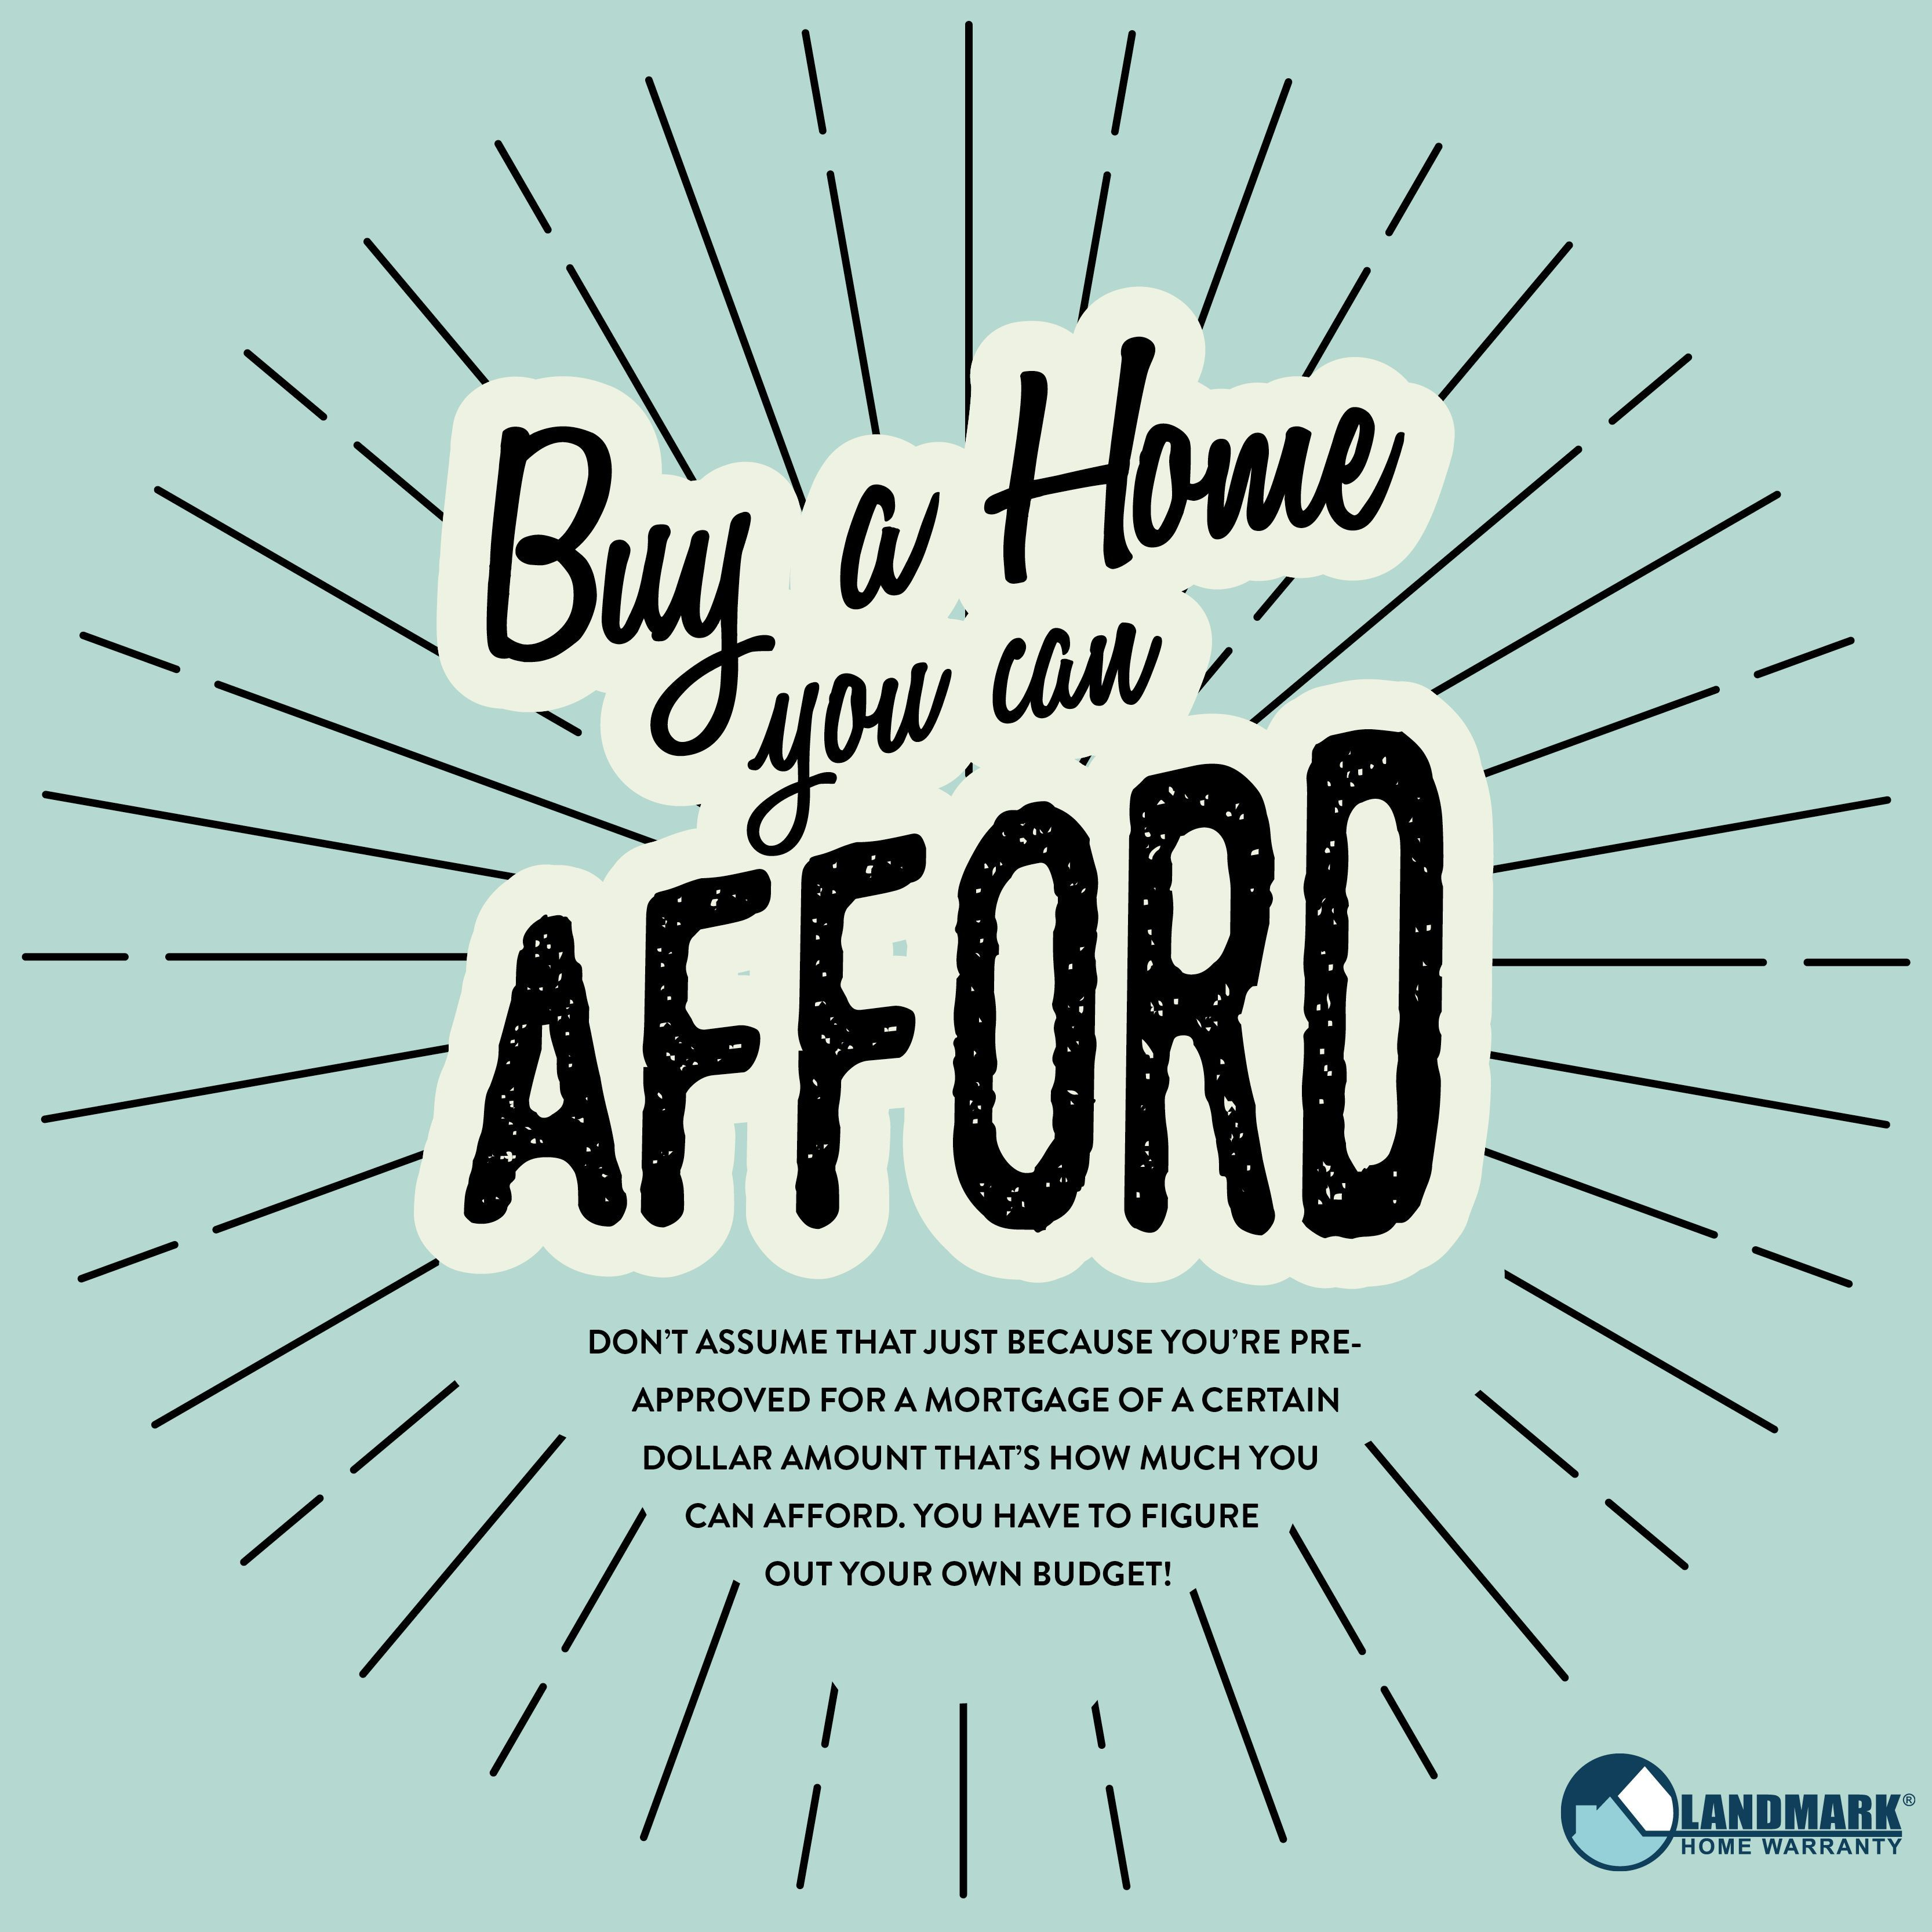 The First Rule Of Buying A Home Is To Buy A Home You Can Afford Hint Mortgage Pre Approvals Do Not Mean Th Preapproved Mortgage Home Buying Buying First Home